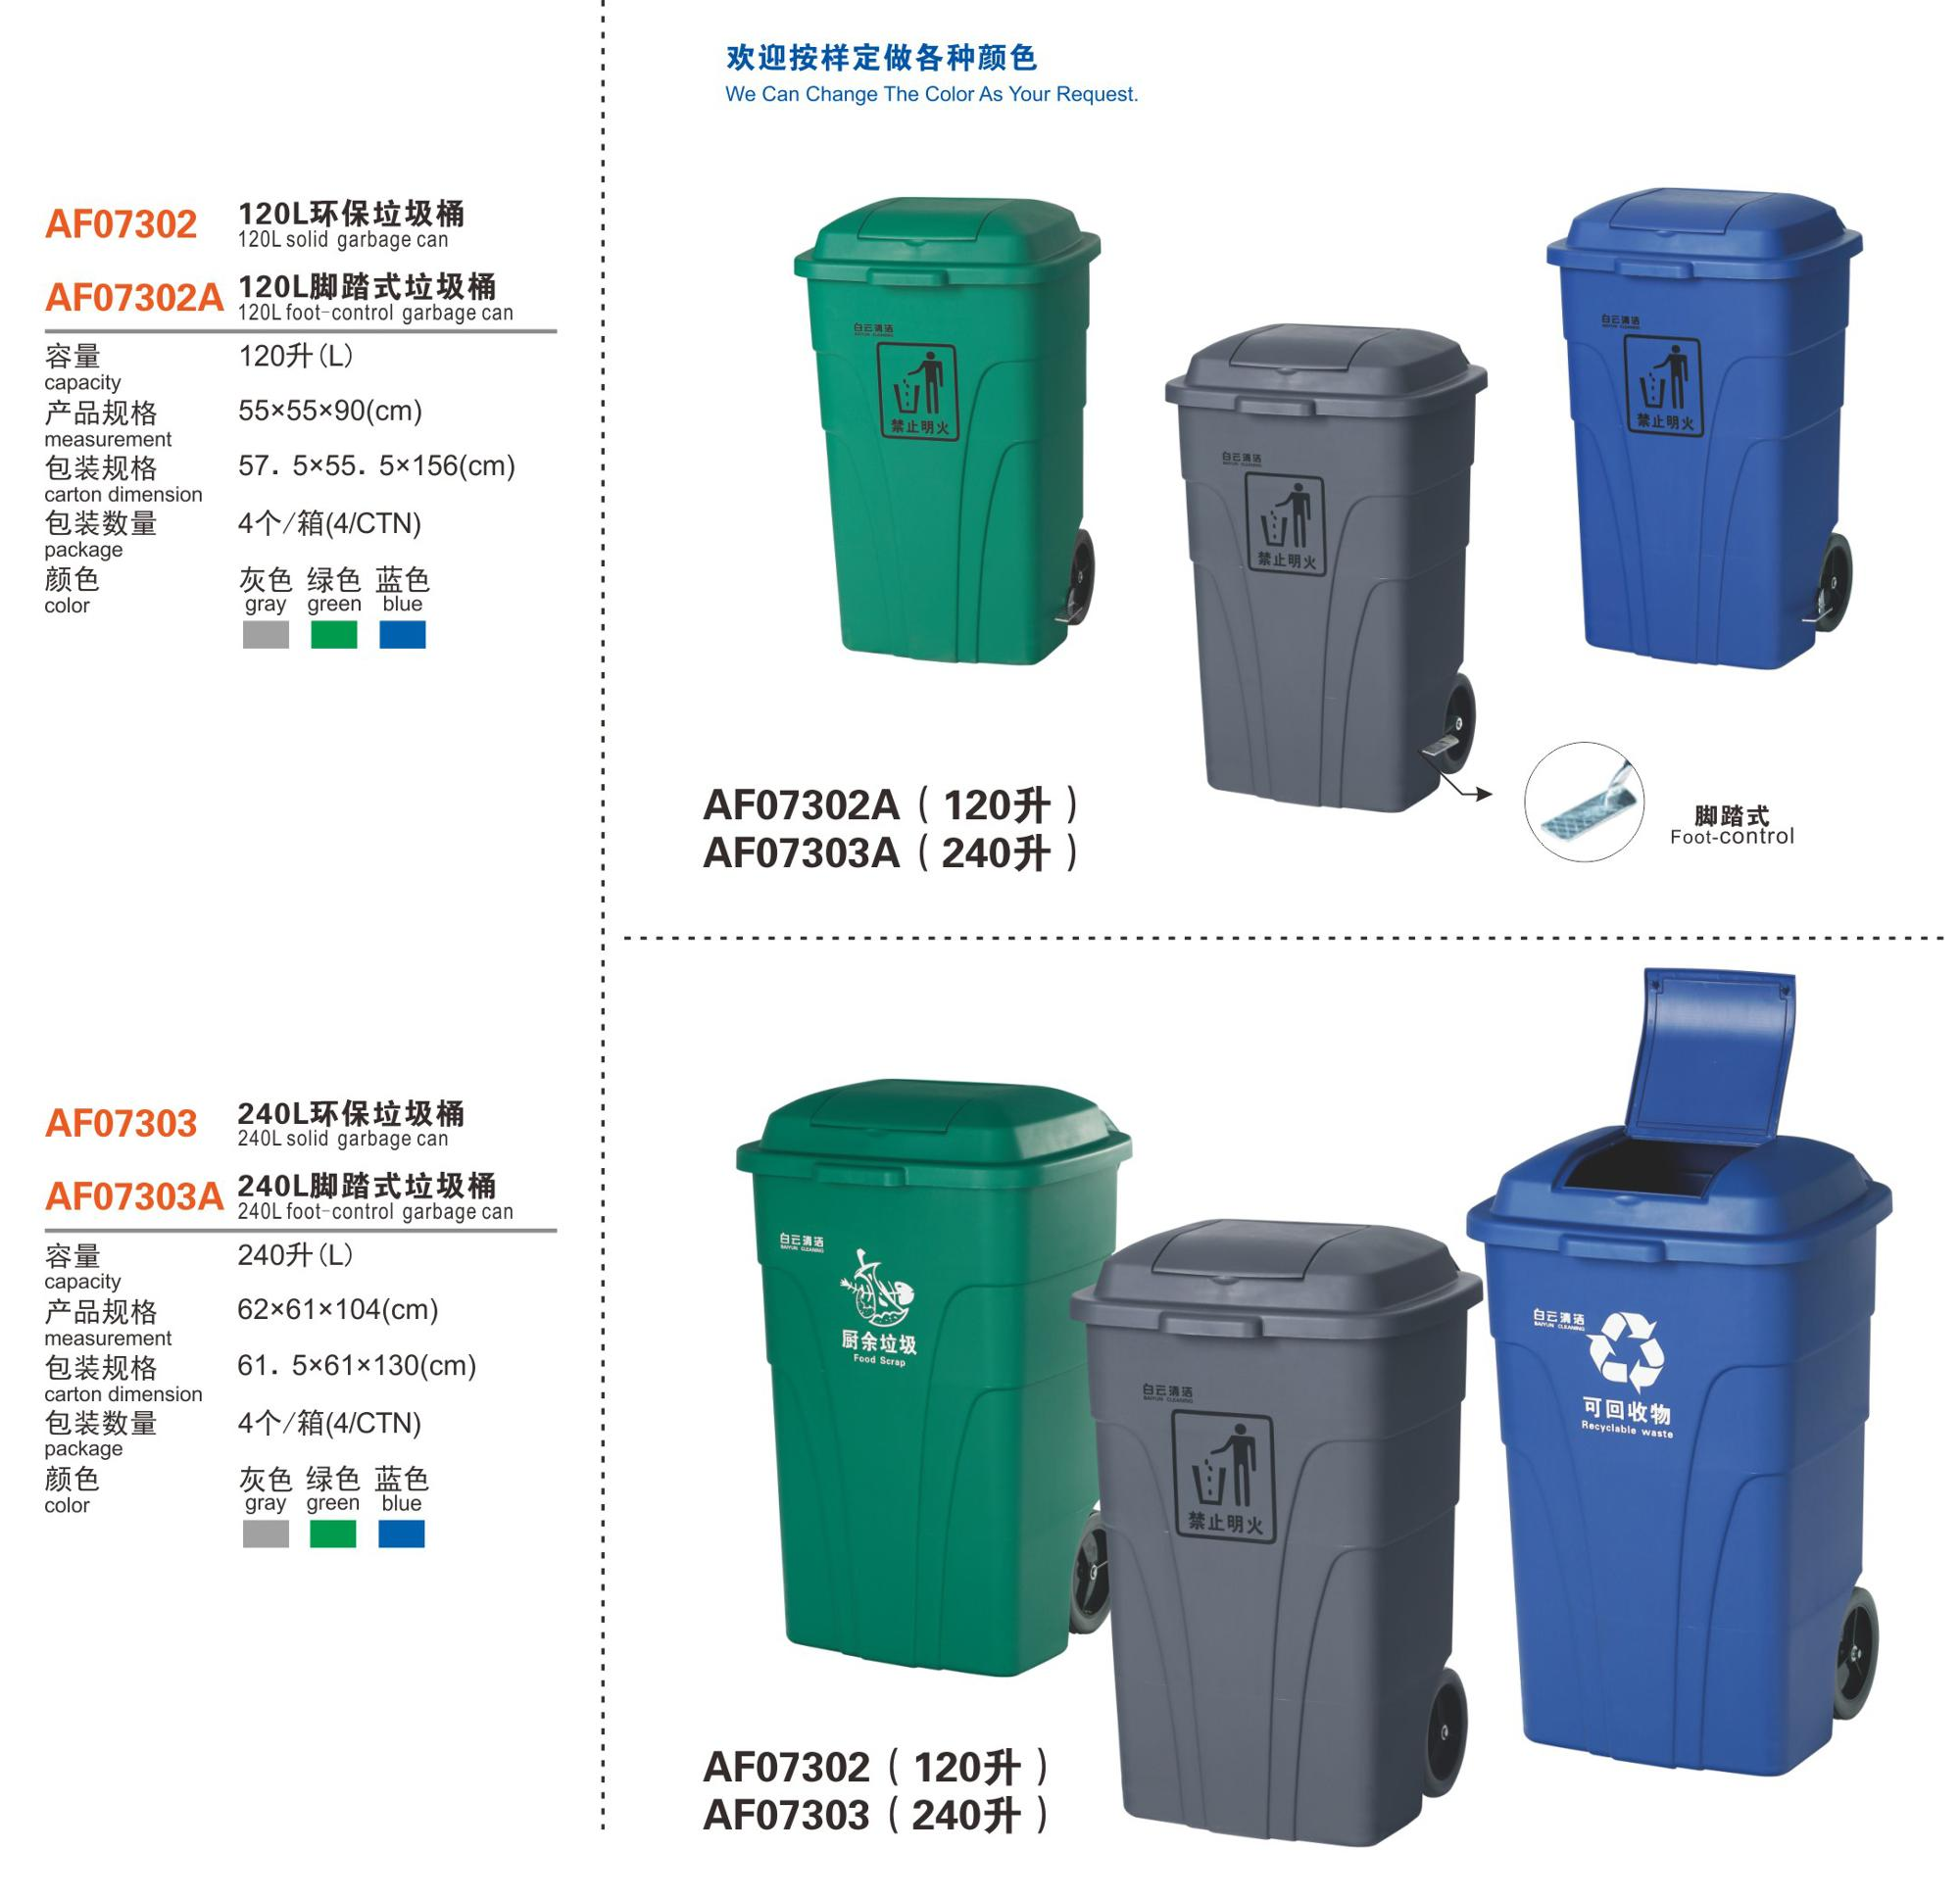 120L Foot control garbage can and waste bin